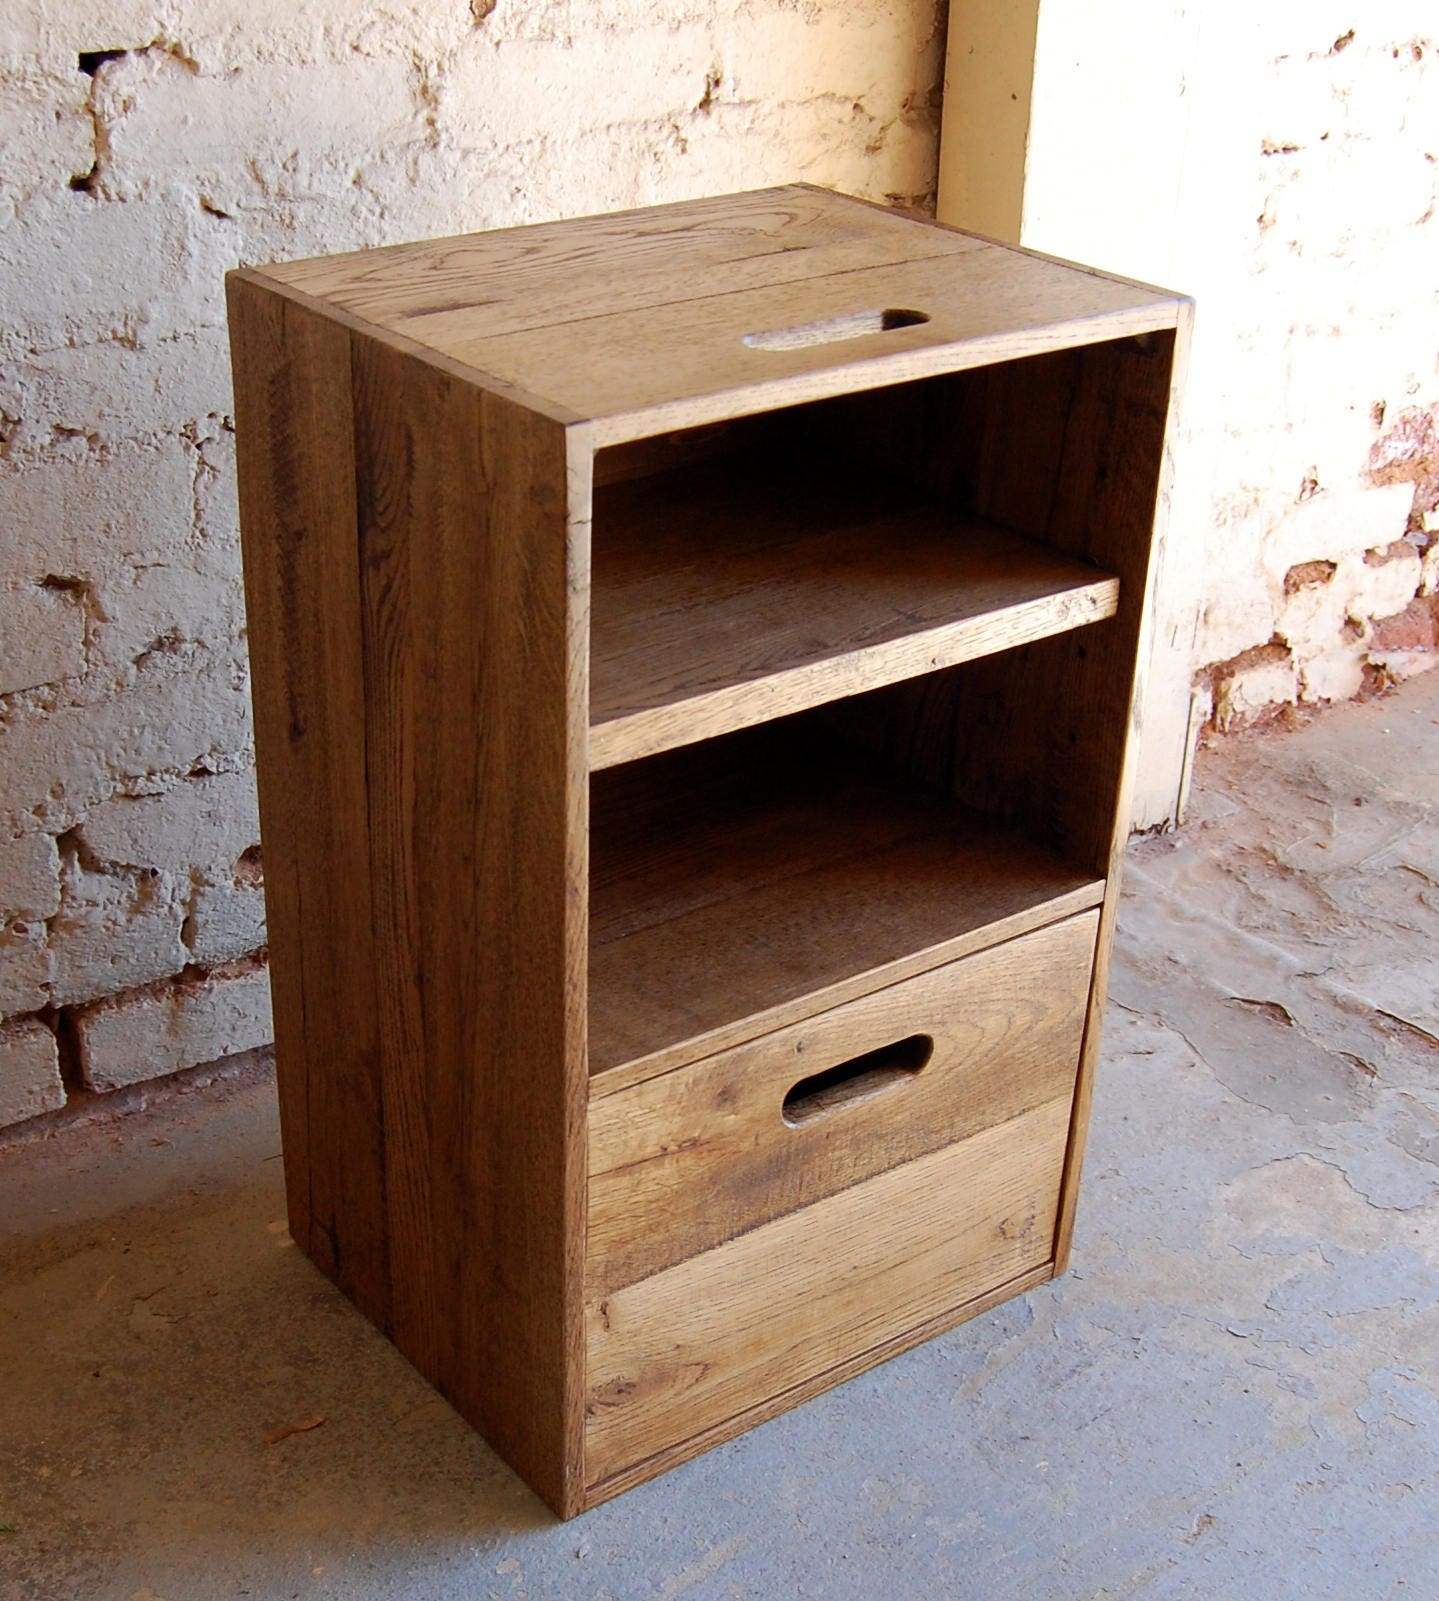 Wooden Crate Nightstand Side Table Drawer Reclaim Wood Pallet